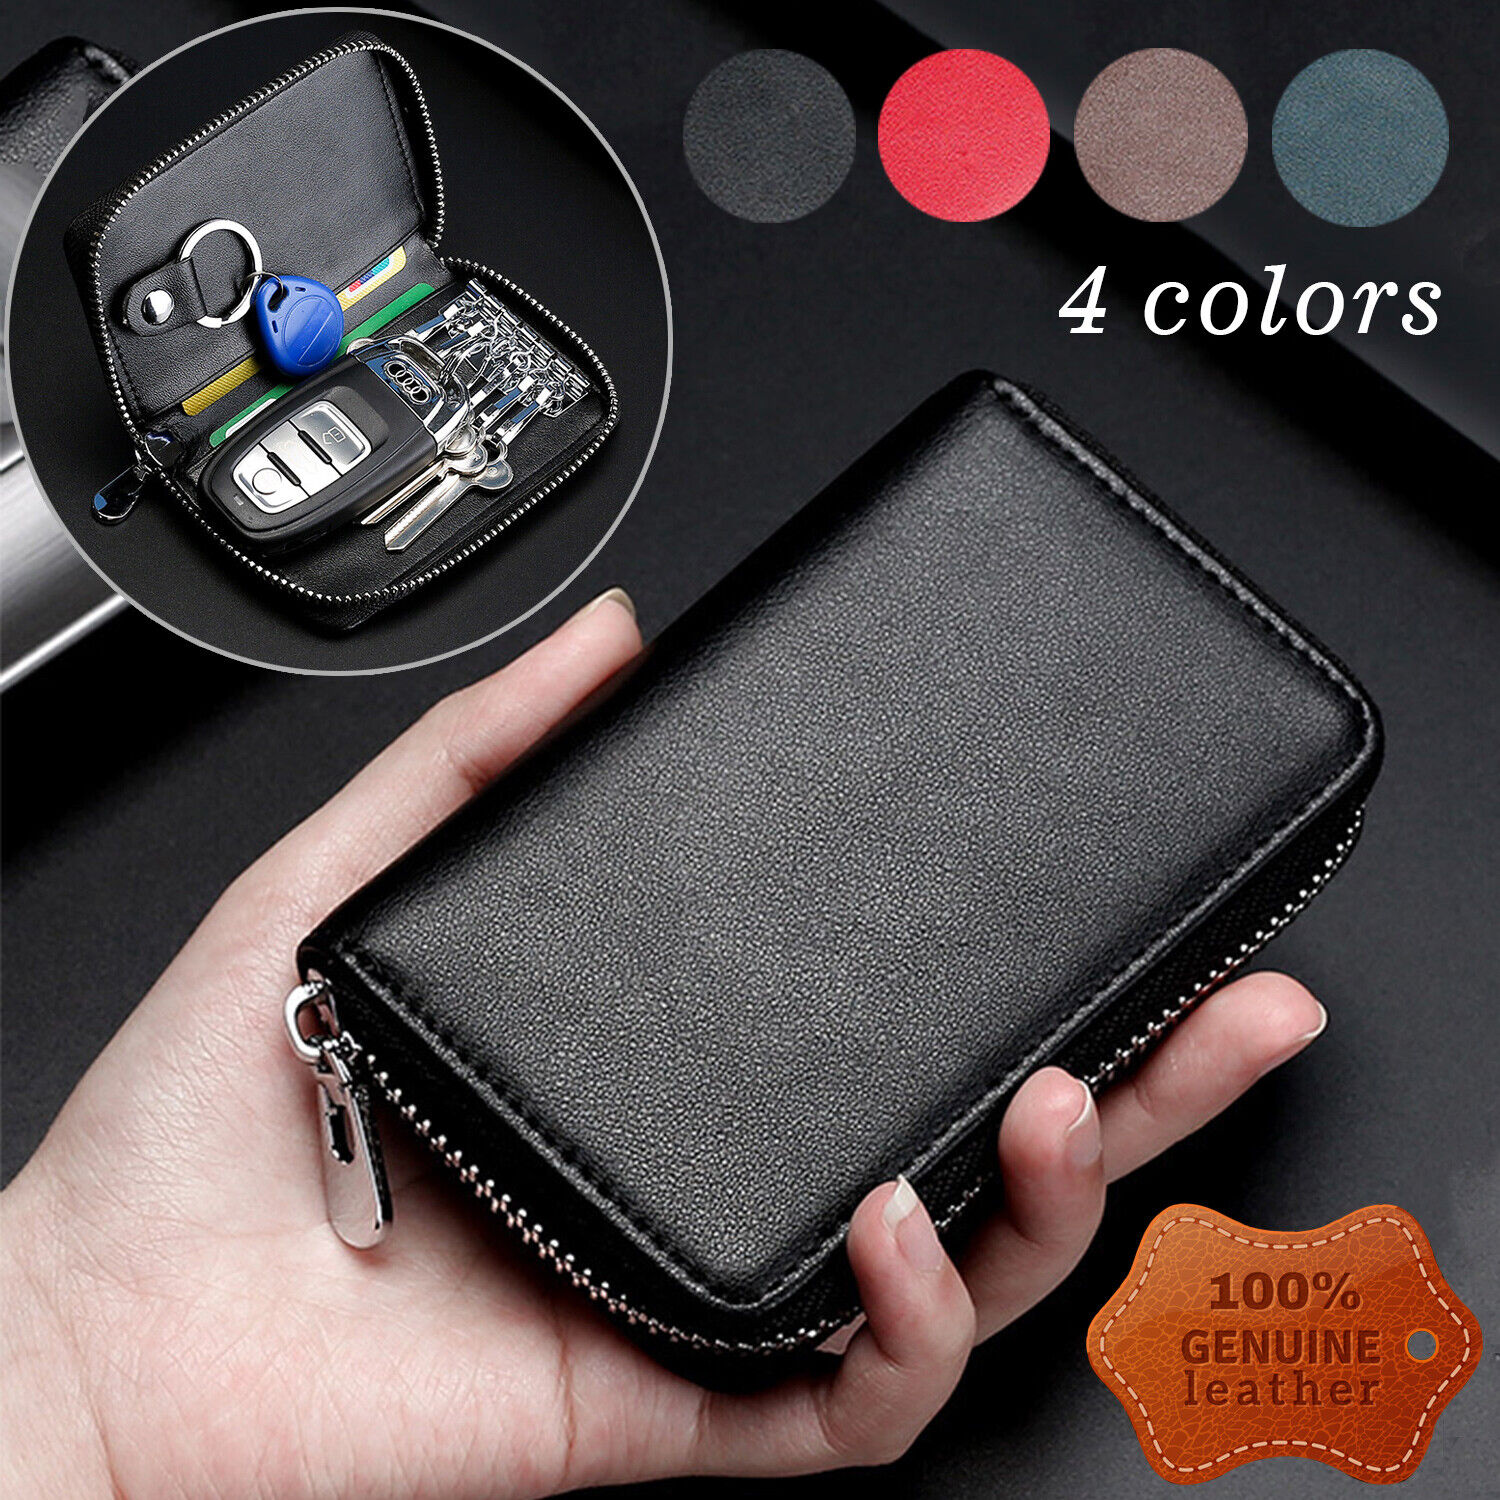 Genuine Leather Wallet Car Key Holder Case Keychain Bag Zip Pouch with Card Slot Clothing, Shoes & Accessories